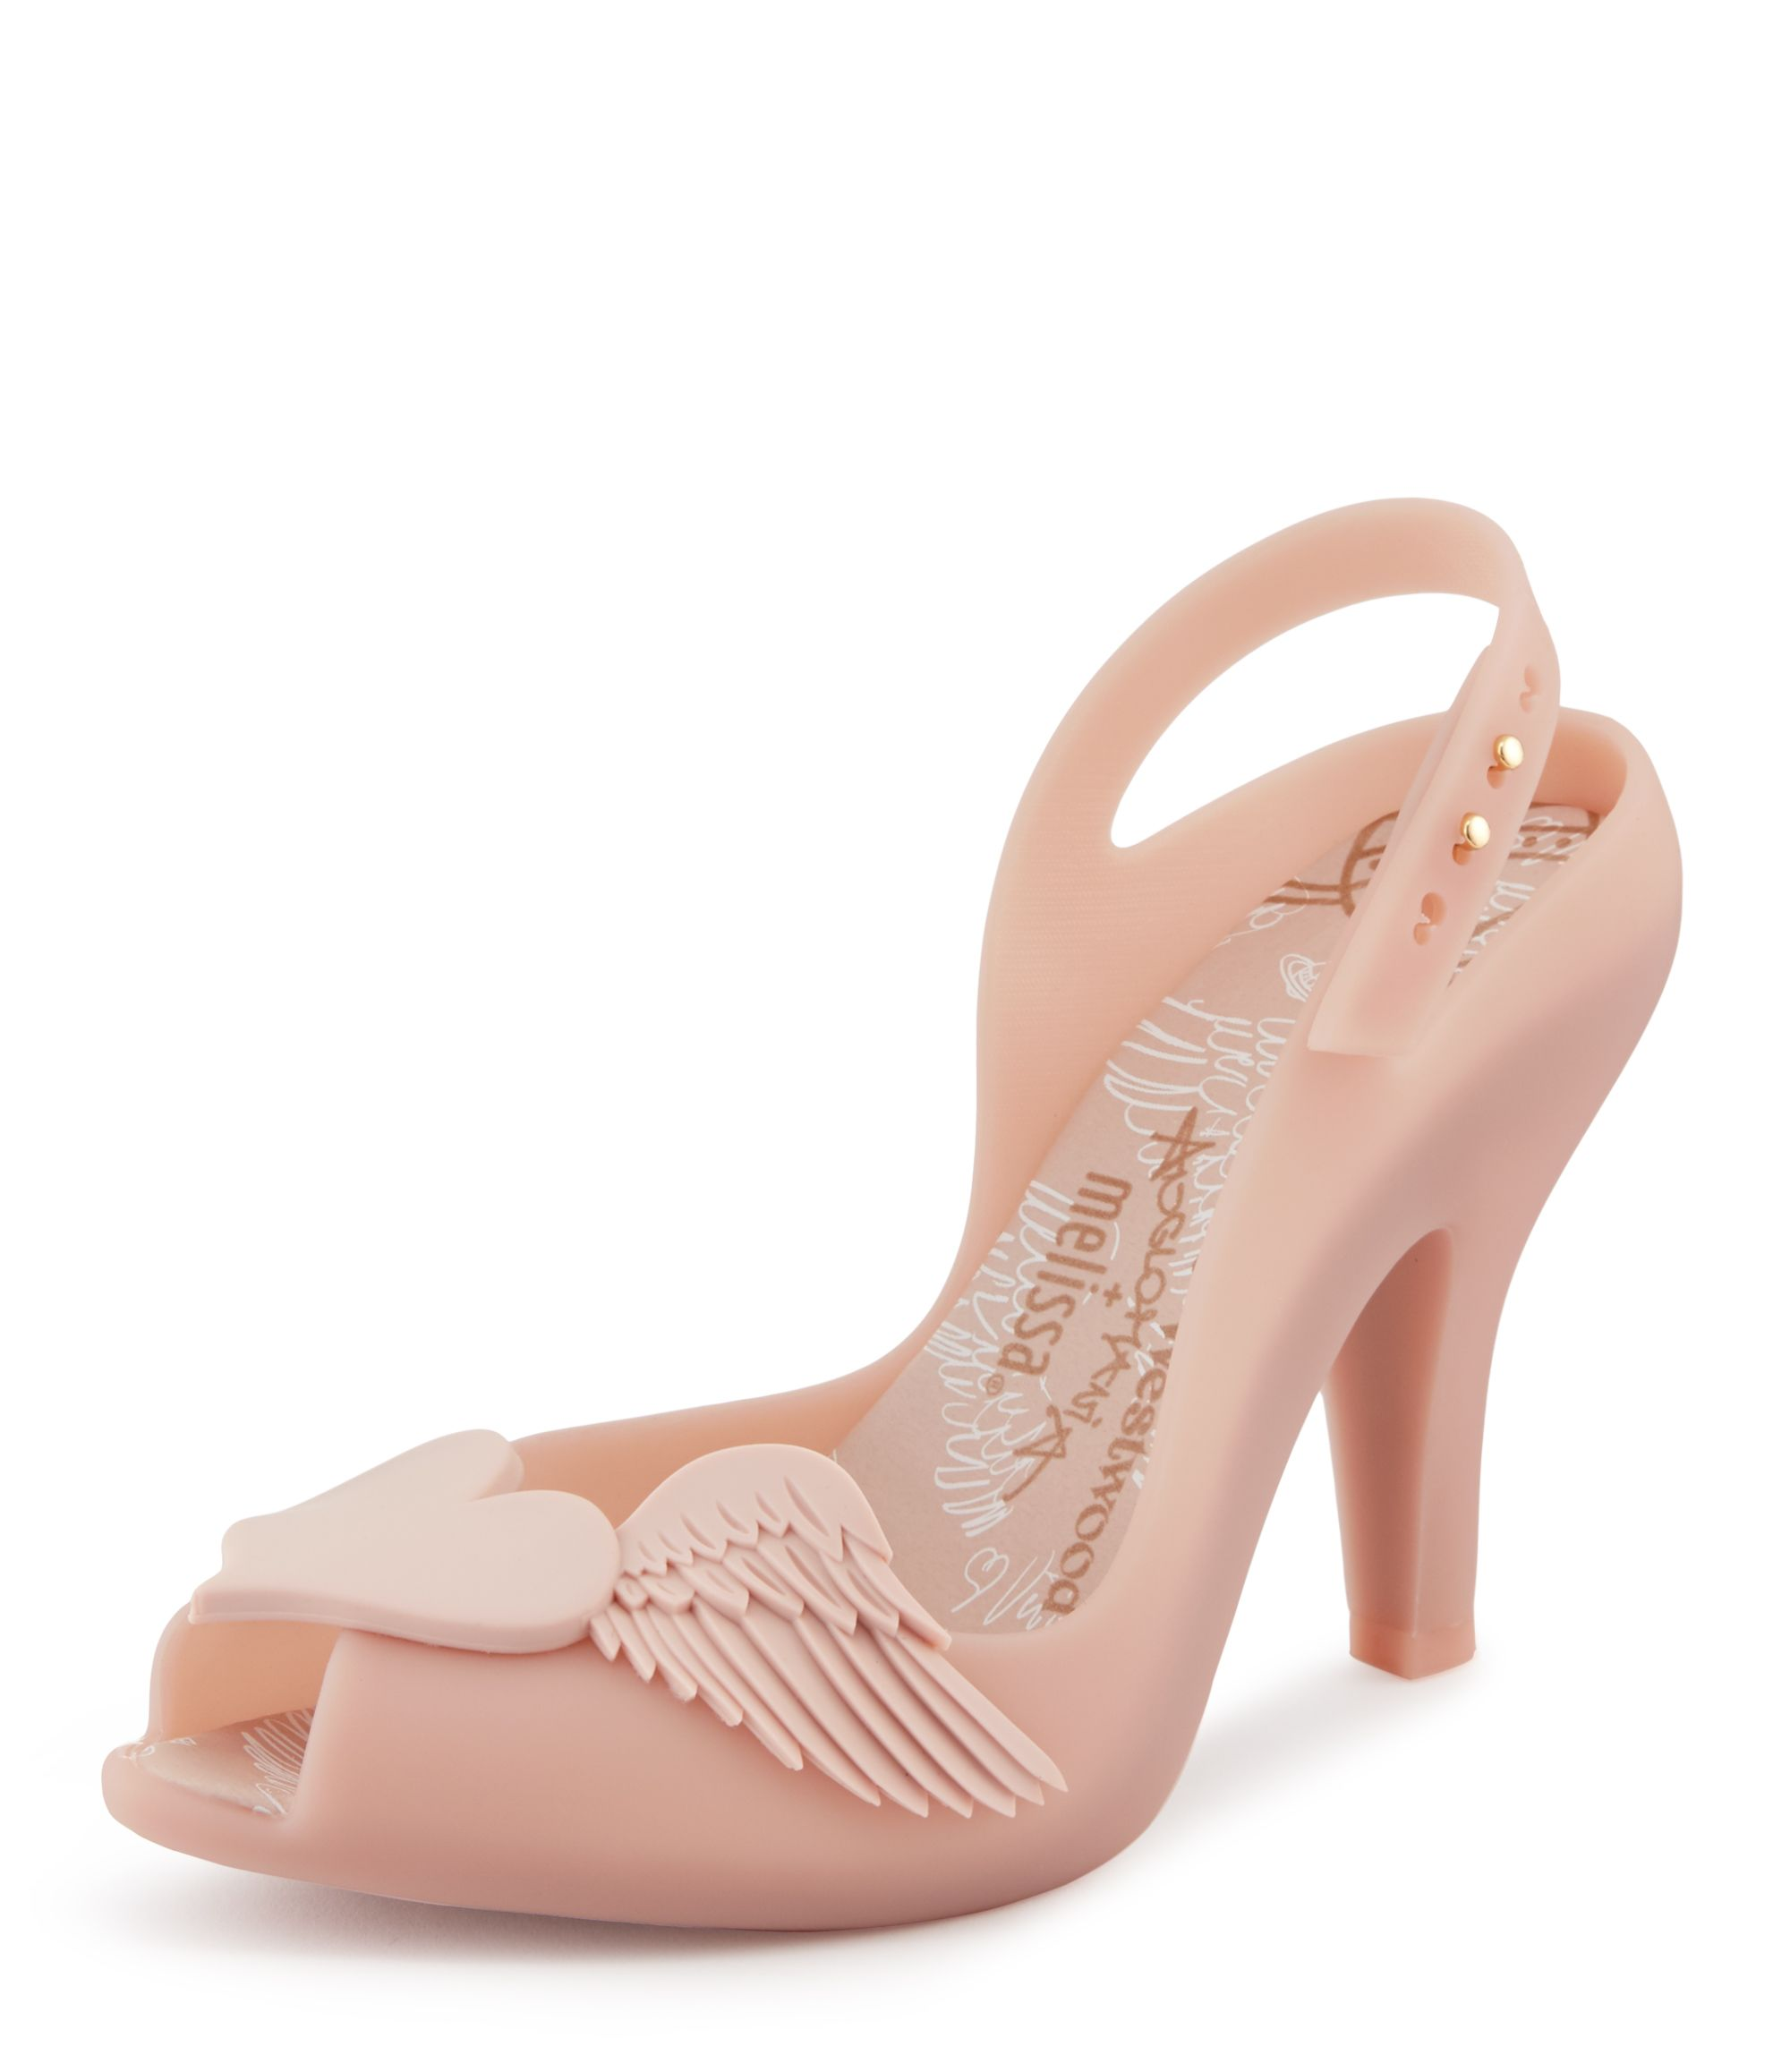 a98910640 VIVIENNE WESTWOOD Nude Lady Dragon With Cherub.  viviennewestwood  shoes